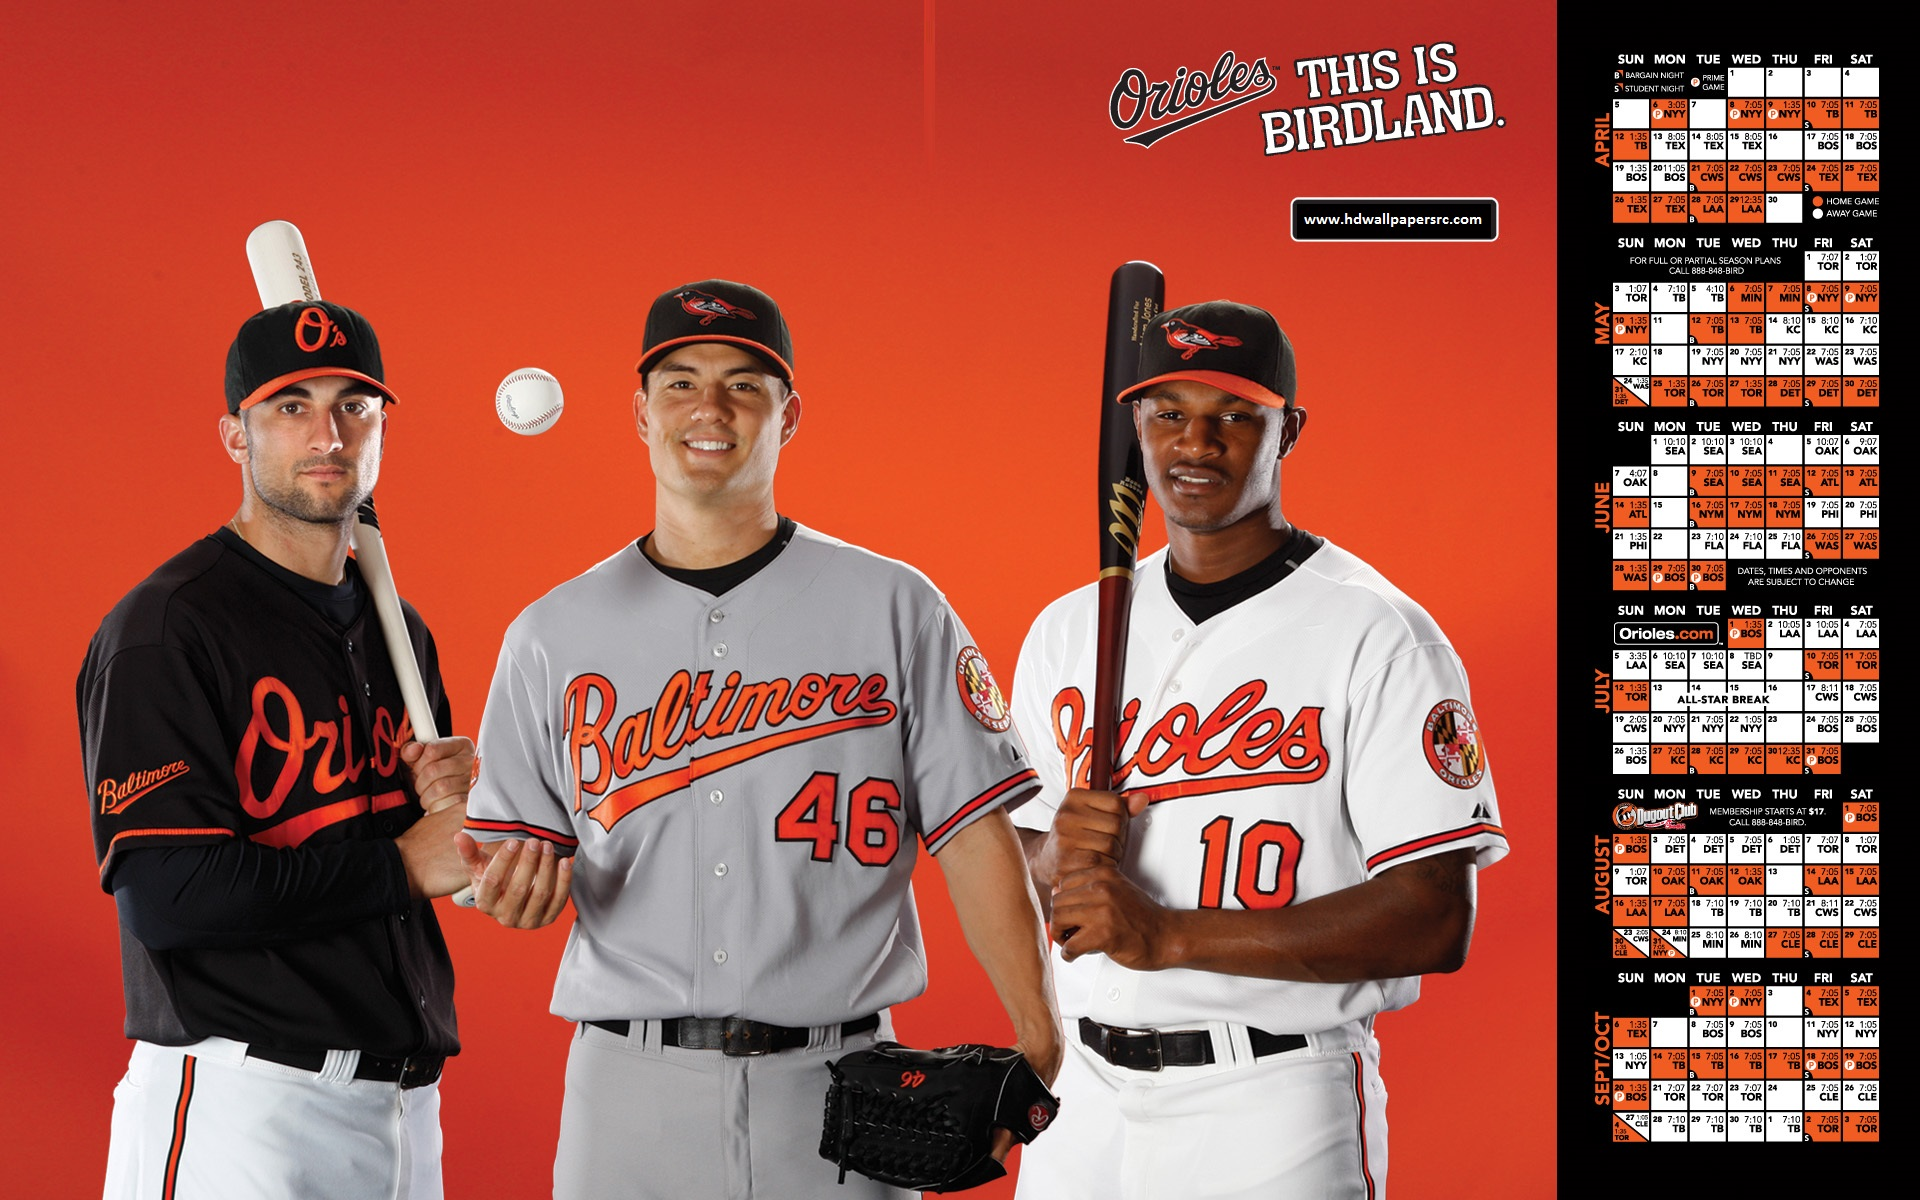 Baltimore orioles hd wallpapers pictures hd wallpapers baltimore orioles pictures baltimore orioles schedule wallpaper picture voltagebd Image collections